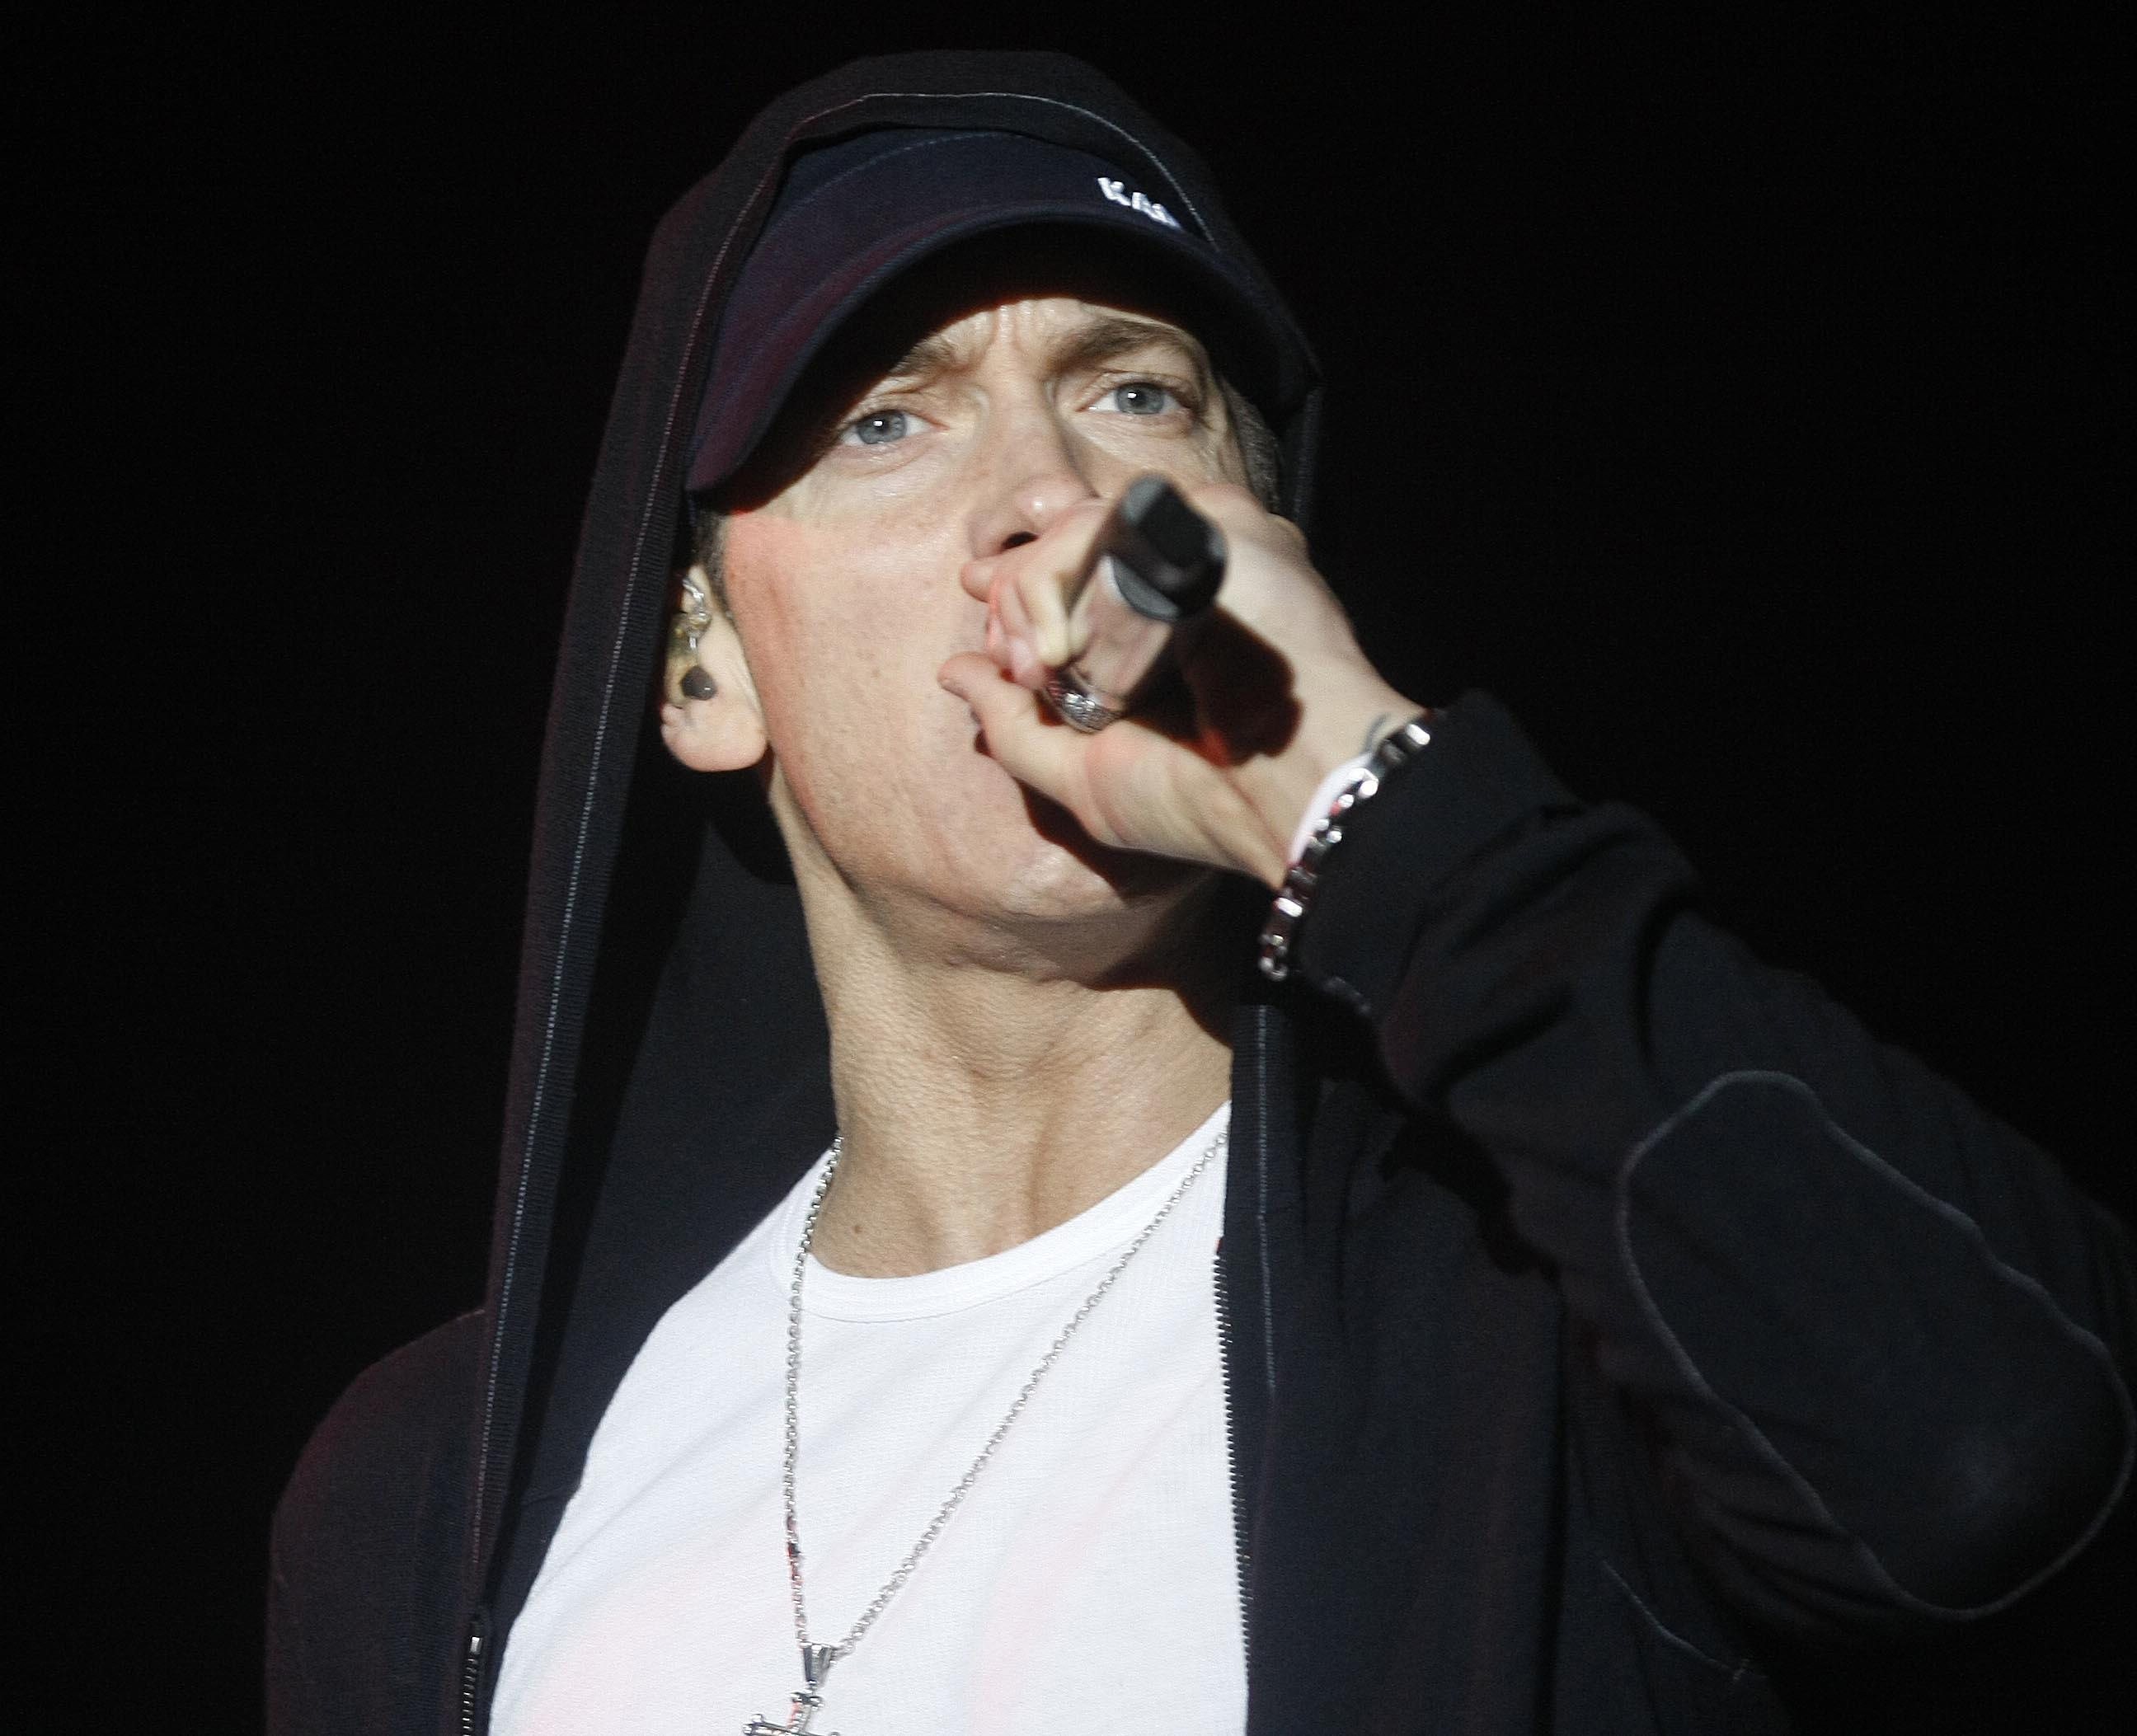 Eminem's Daughter Hailie Scott Mathers: My Dad and I 'Are Very Close'